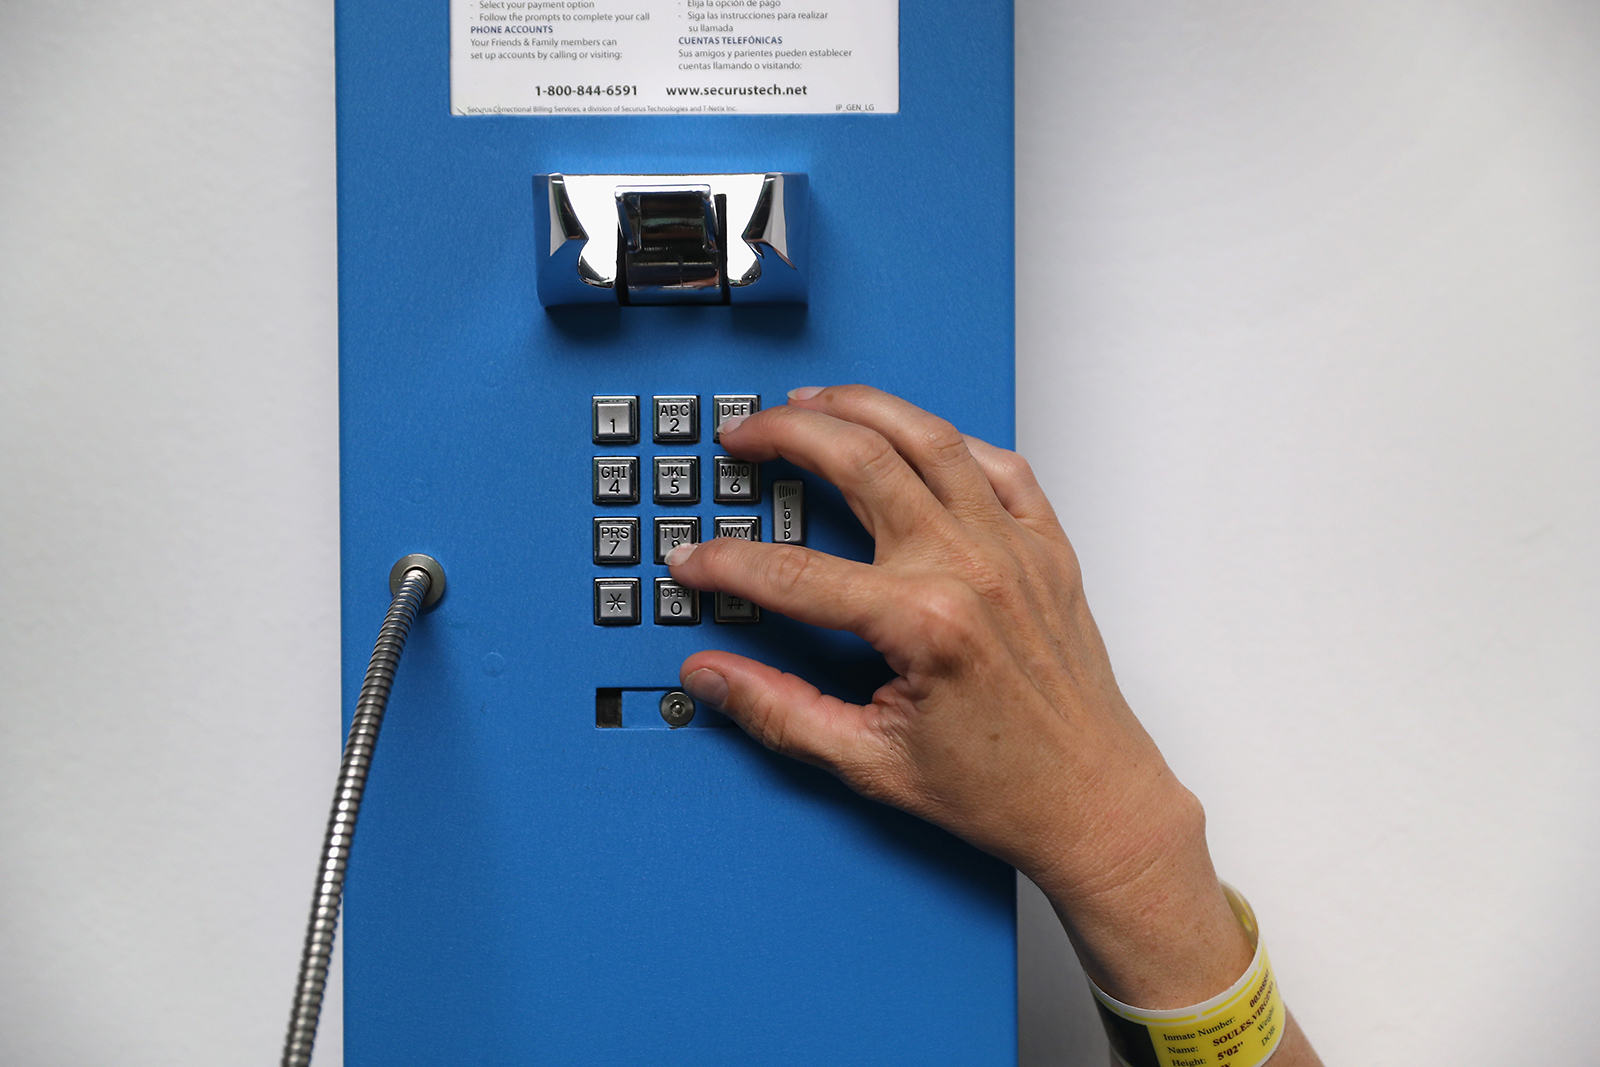 Connecticut become first state to make calls free for inmates and their families